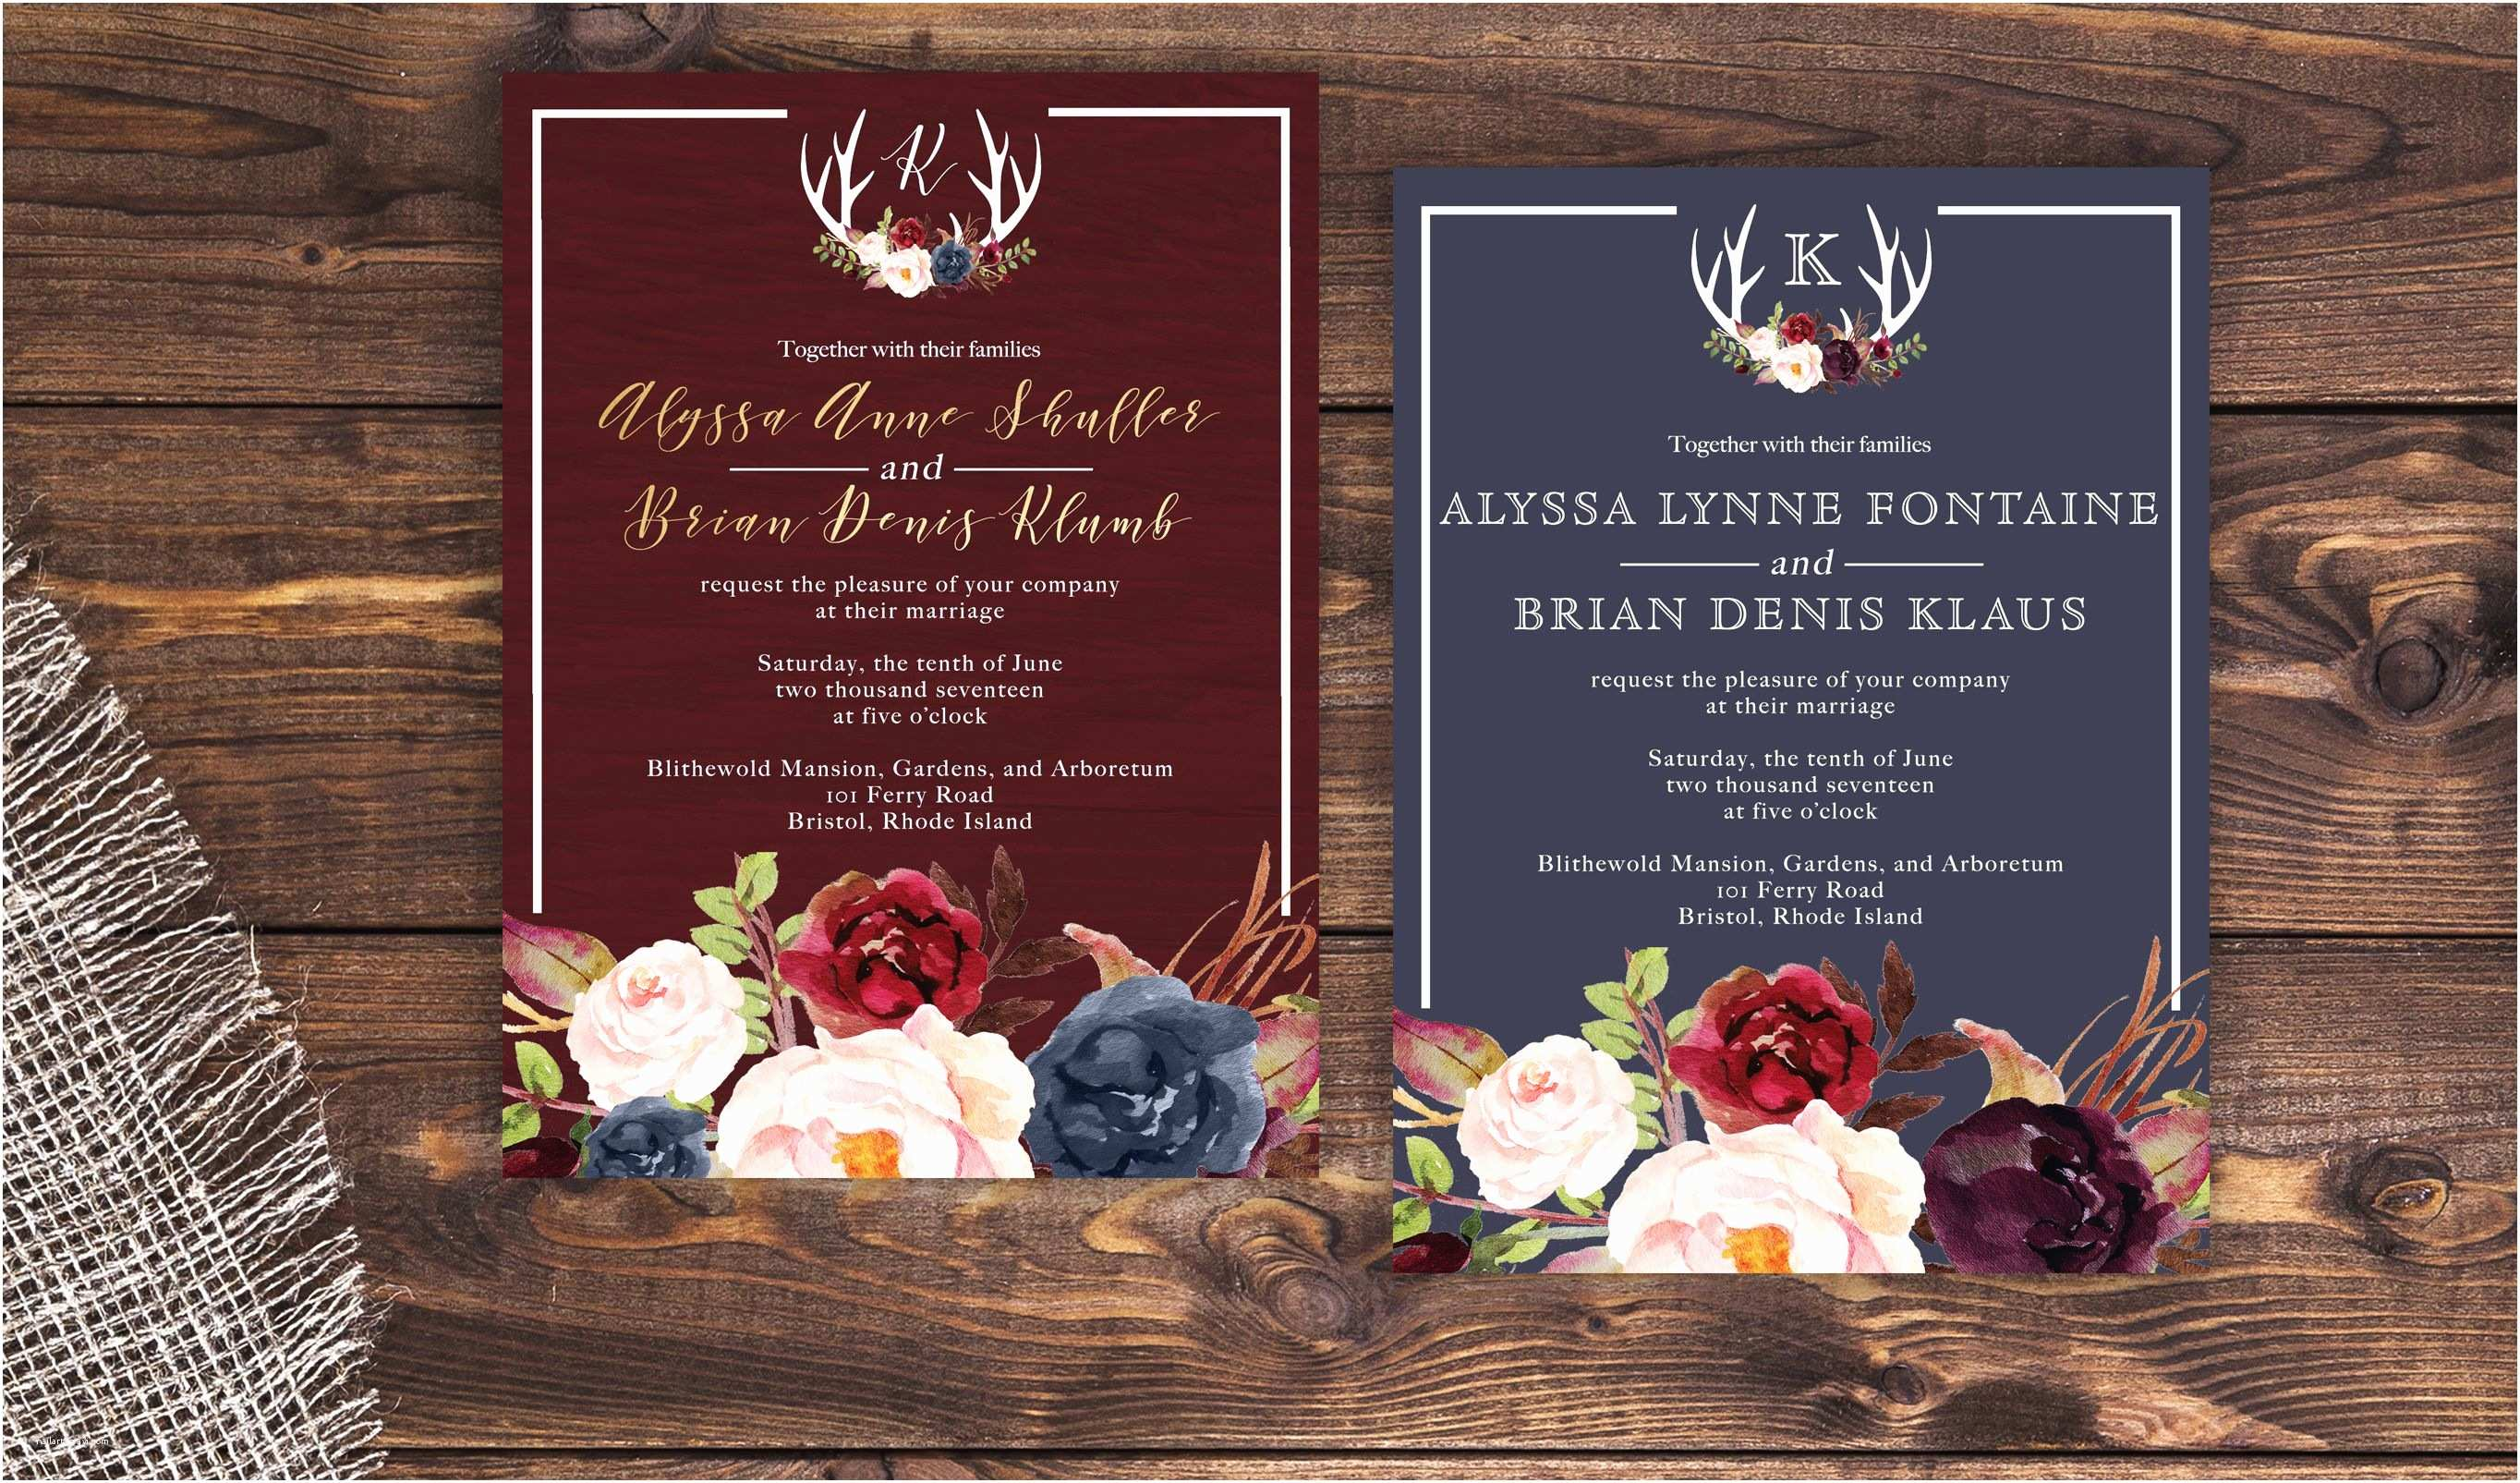 Rustic Wedding Invitations Cheap Navy and Marsala Wedding Invitation Rustic Wedding